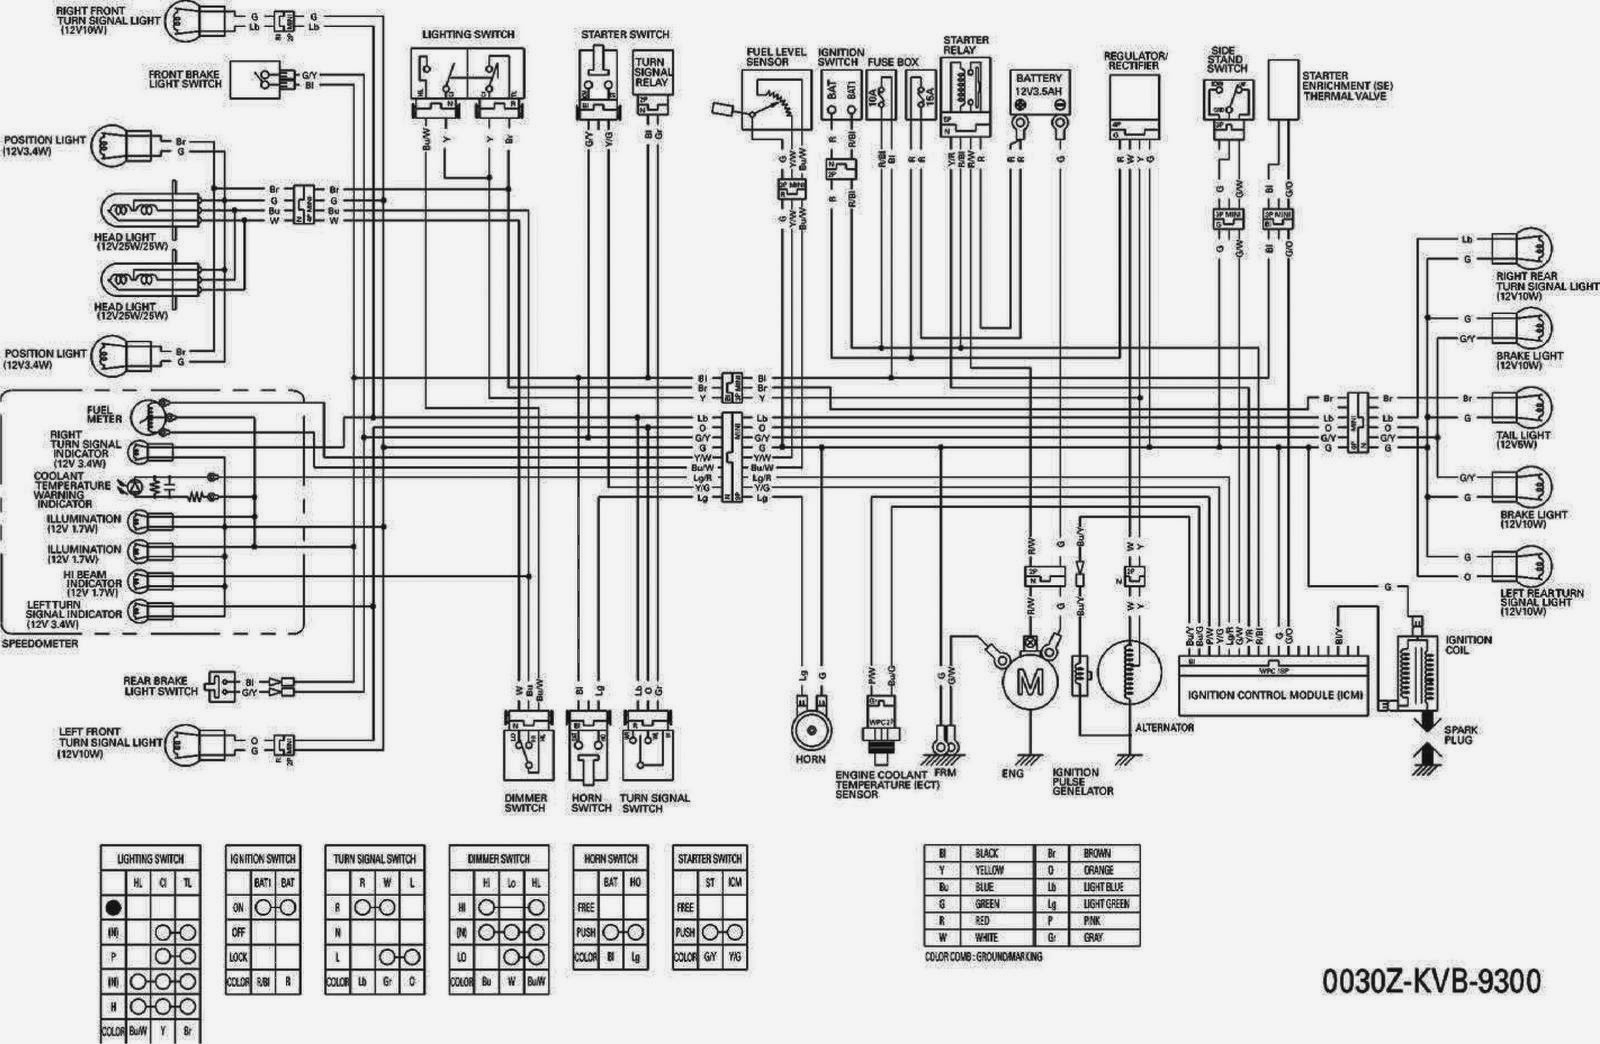 Wiring Diagram Yamaha New Vixion Download App